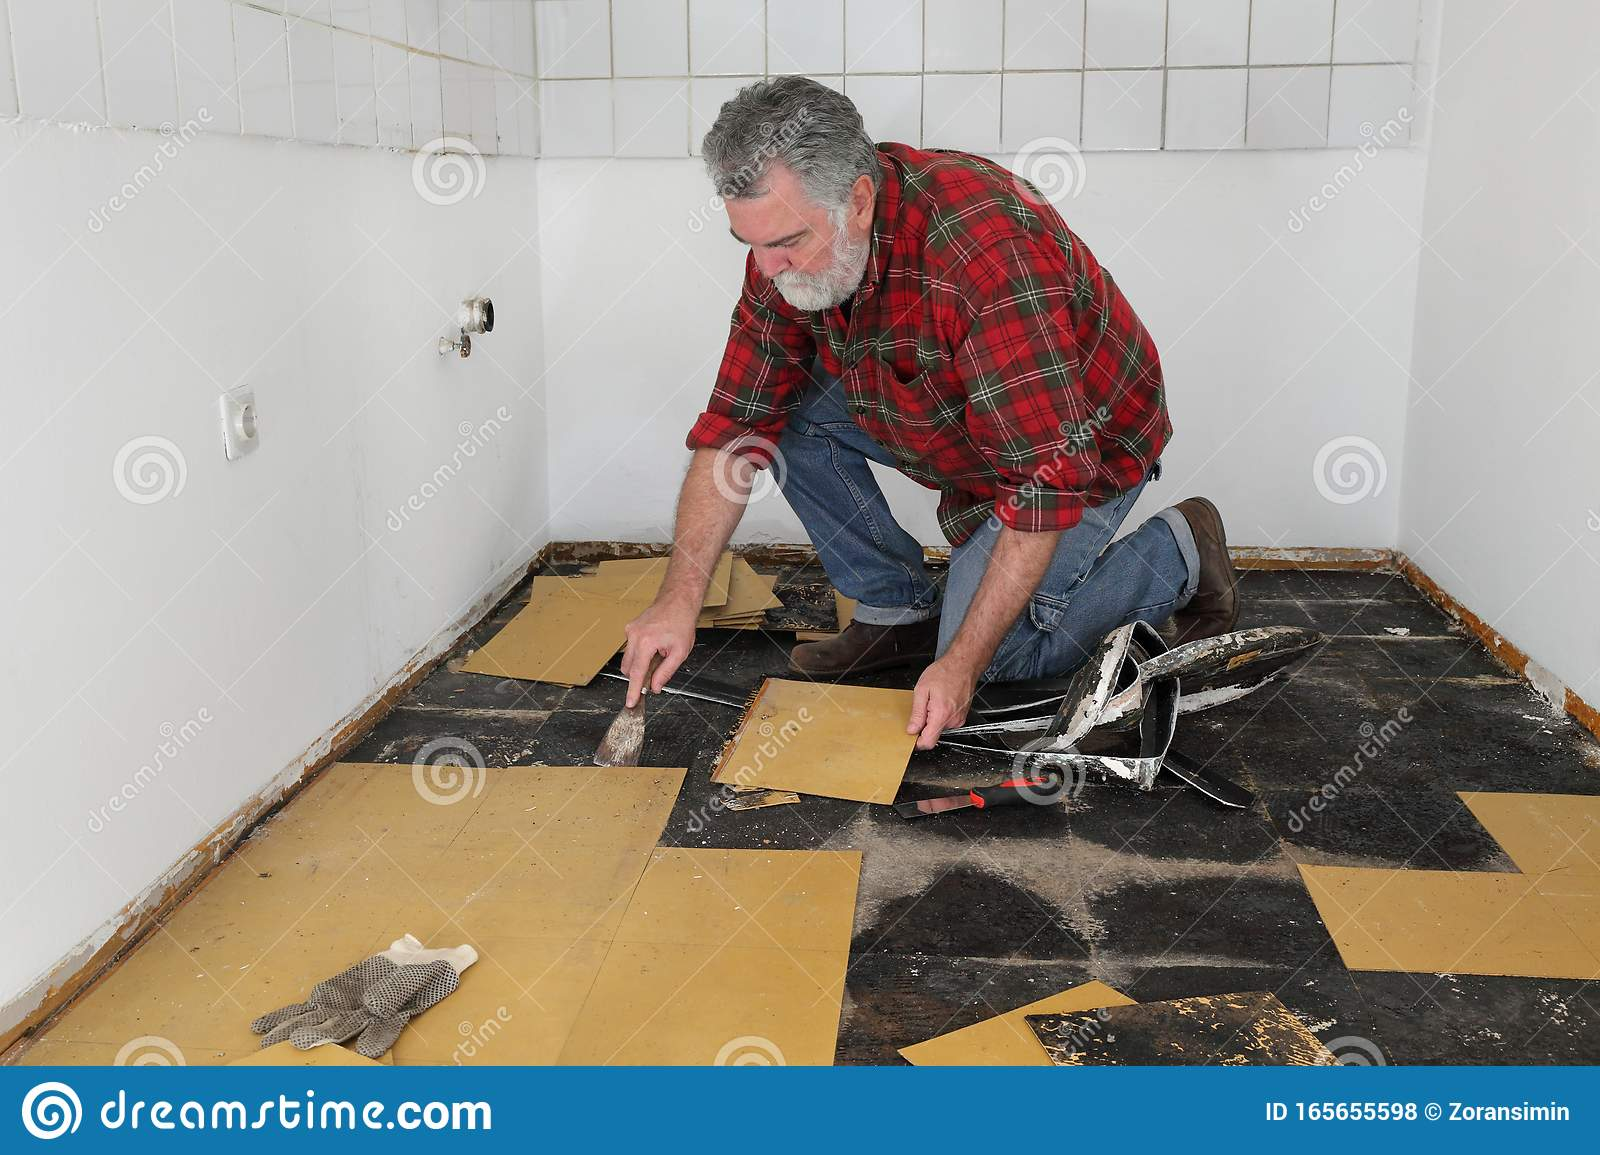 Old Vinyl Tiles Removal From Floor In A Room Or Kitchen Stock Photo Image Of House Installing 165655598